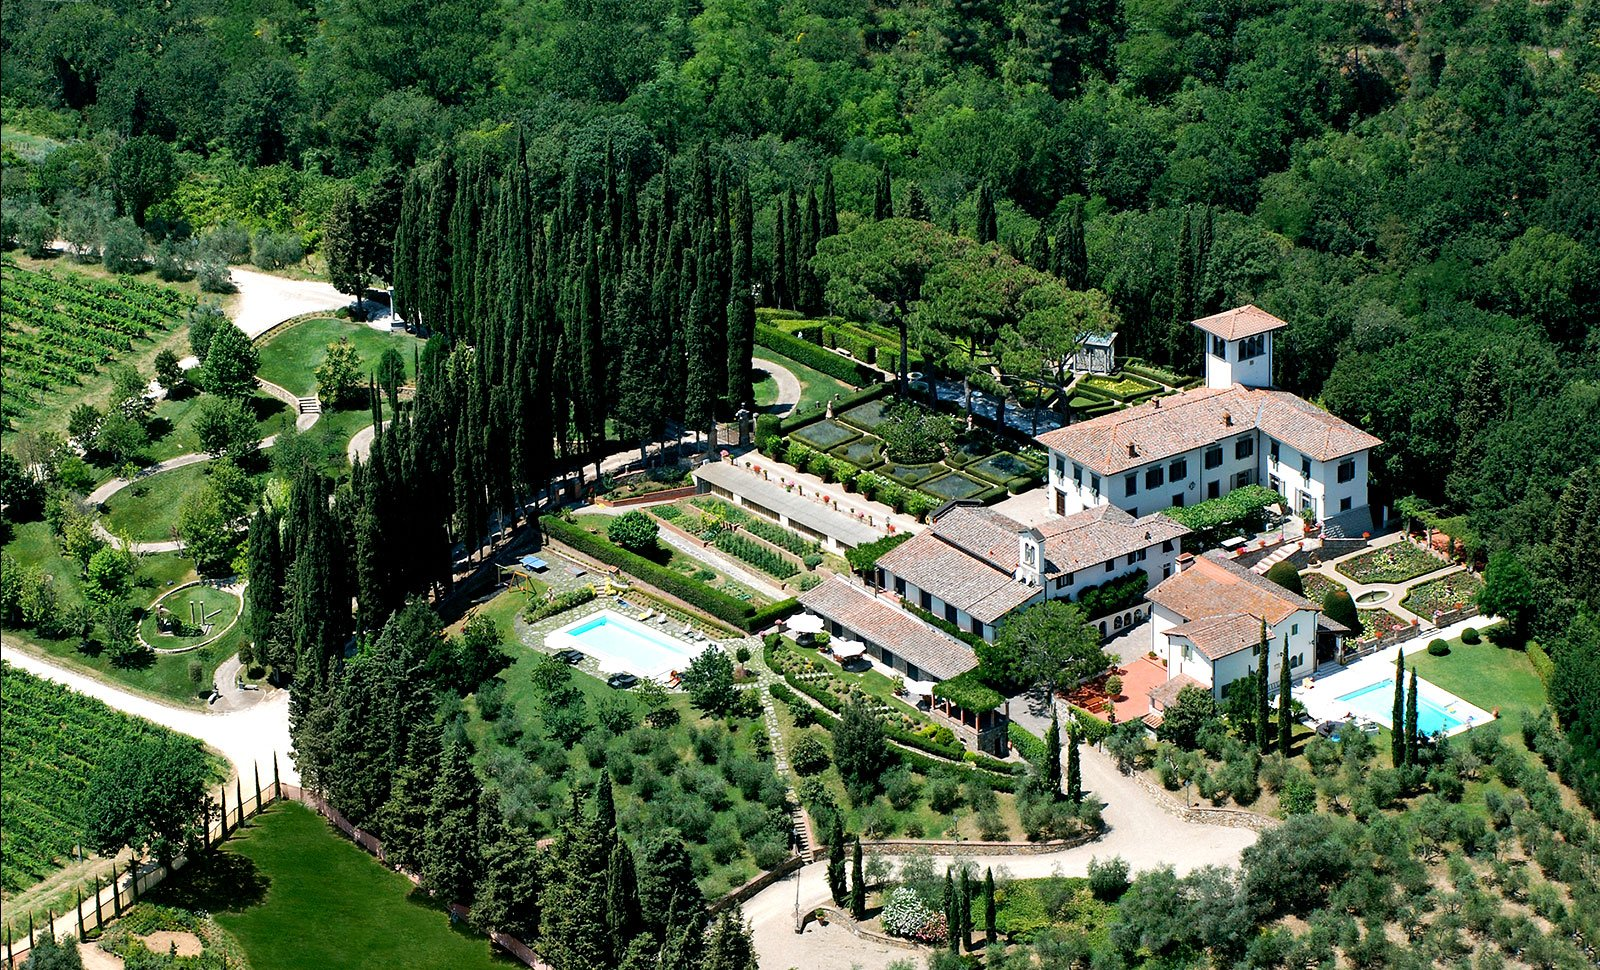 This 13th-century villa in the heart of Tuscan countryside is a haven for children: the property boasts a playground, three swimming pools, table tennis area, and acres of recreation land.